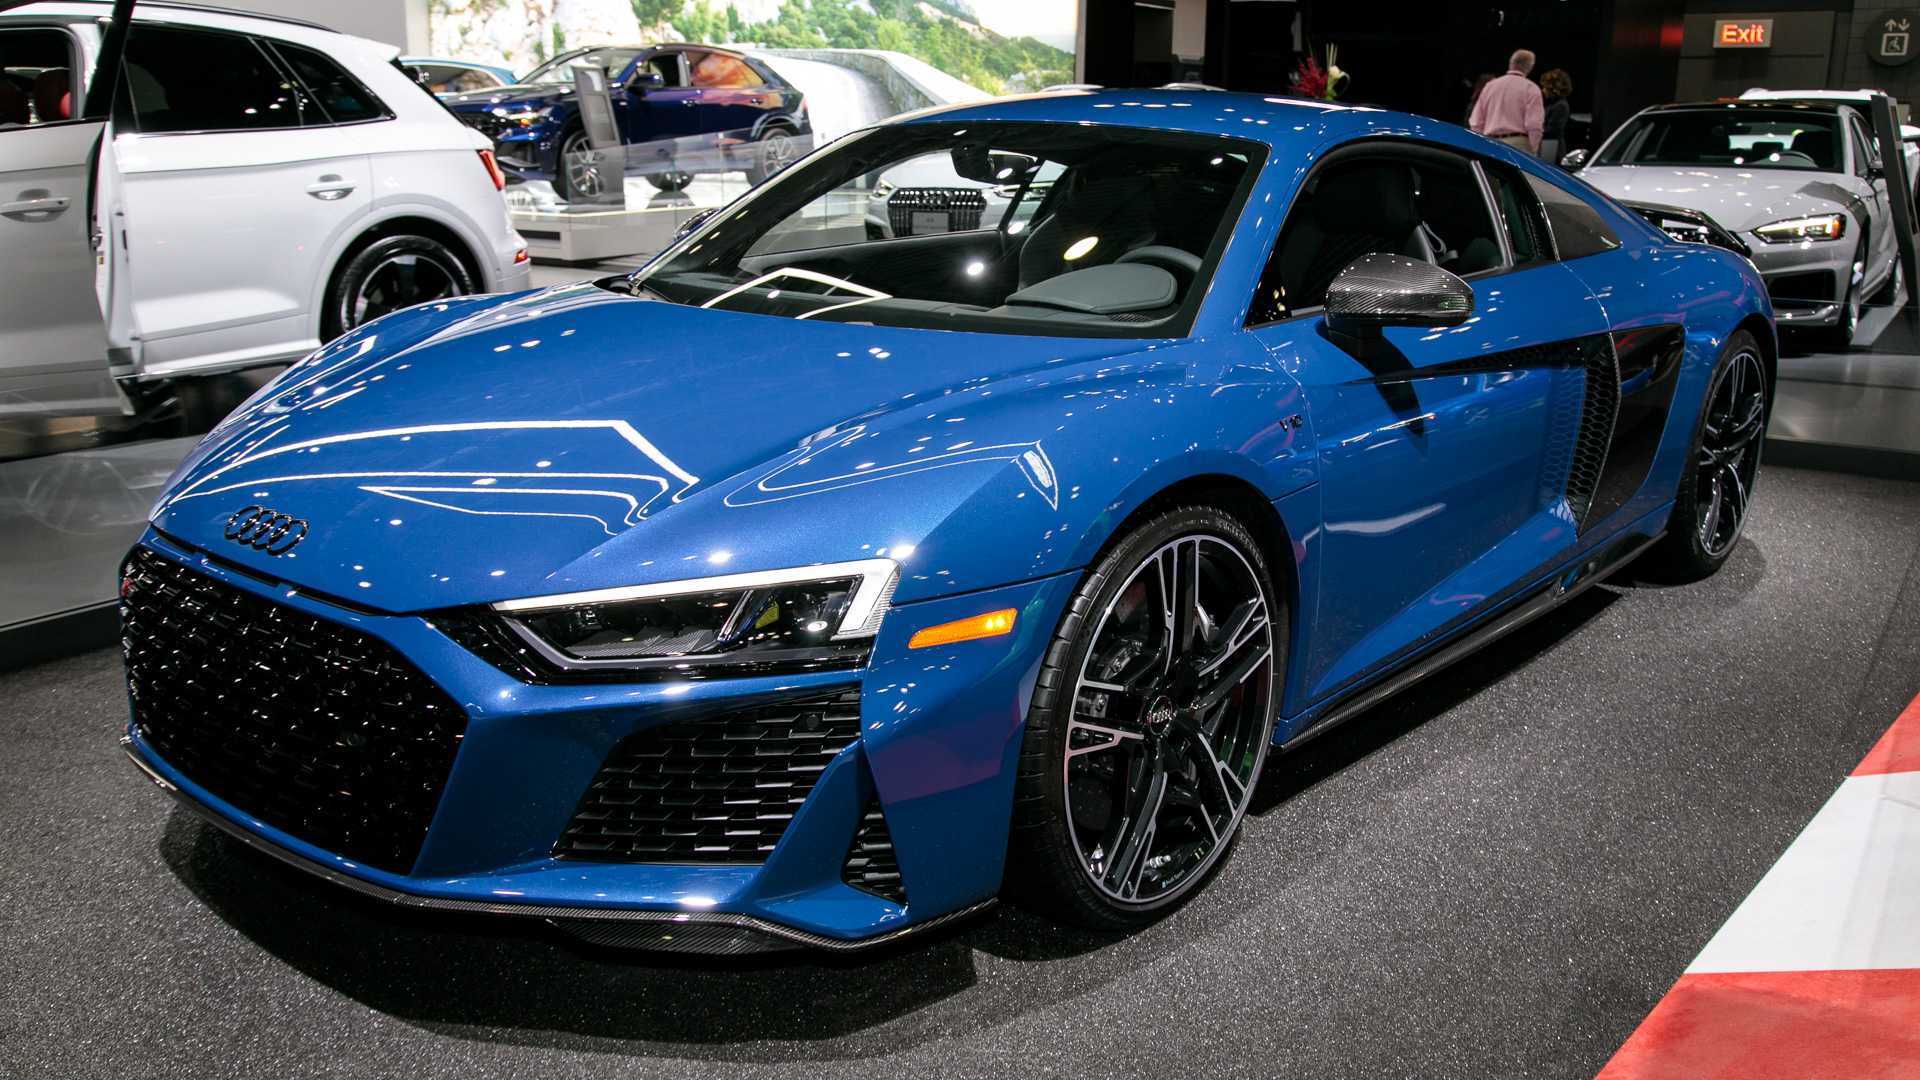 69 All New 2020 Audi R8 V10 Performance Model with 2020 Audi R8 V10 Performance